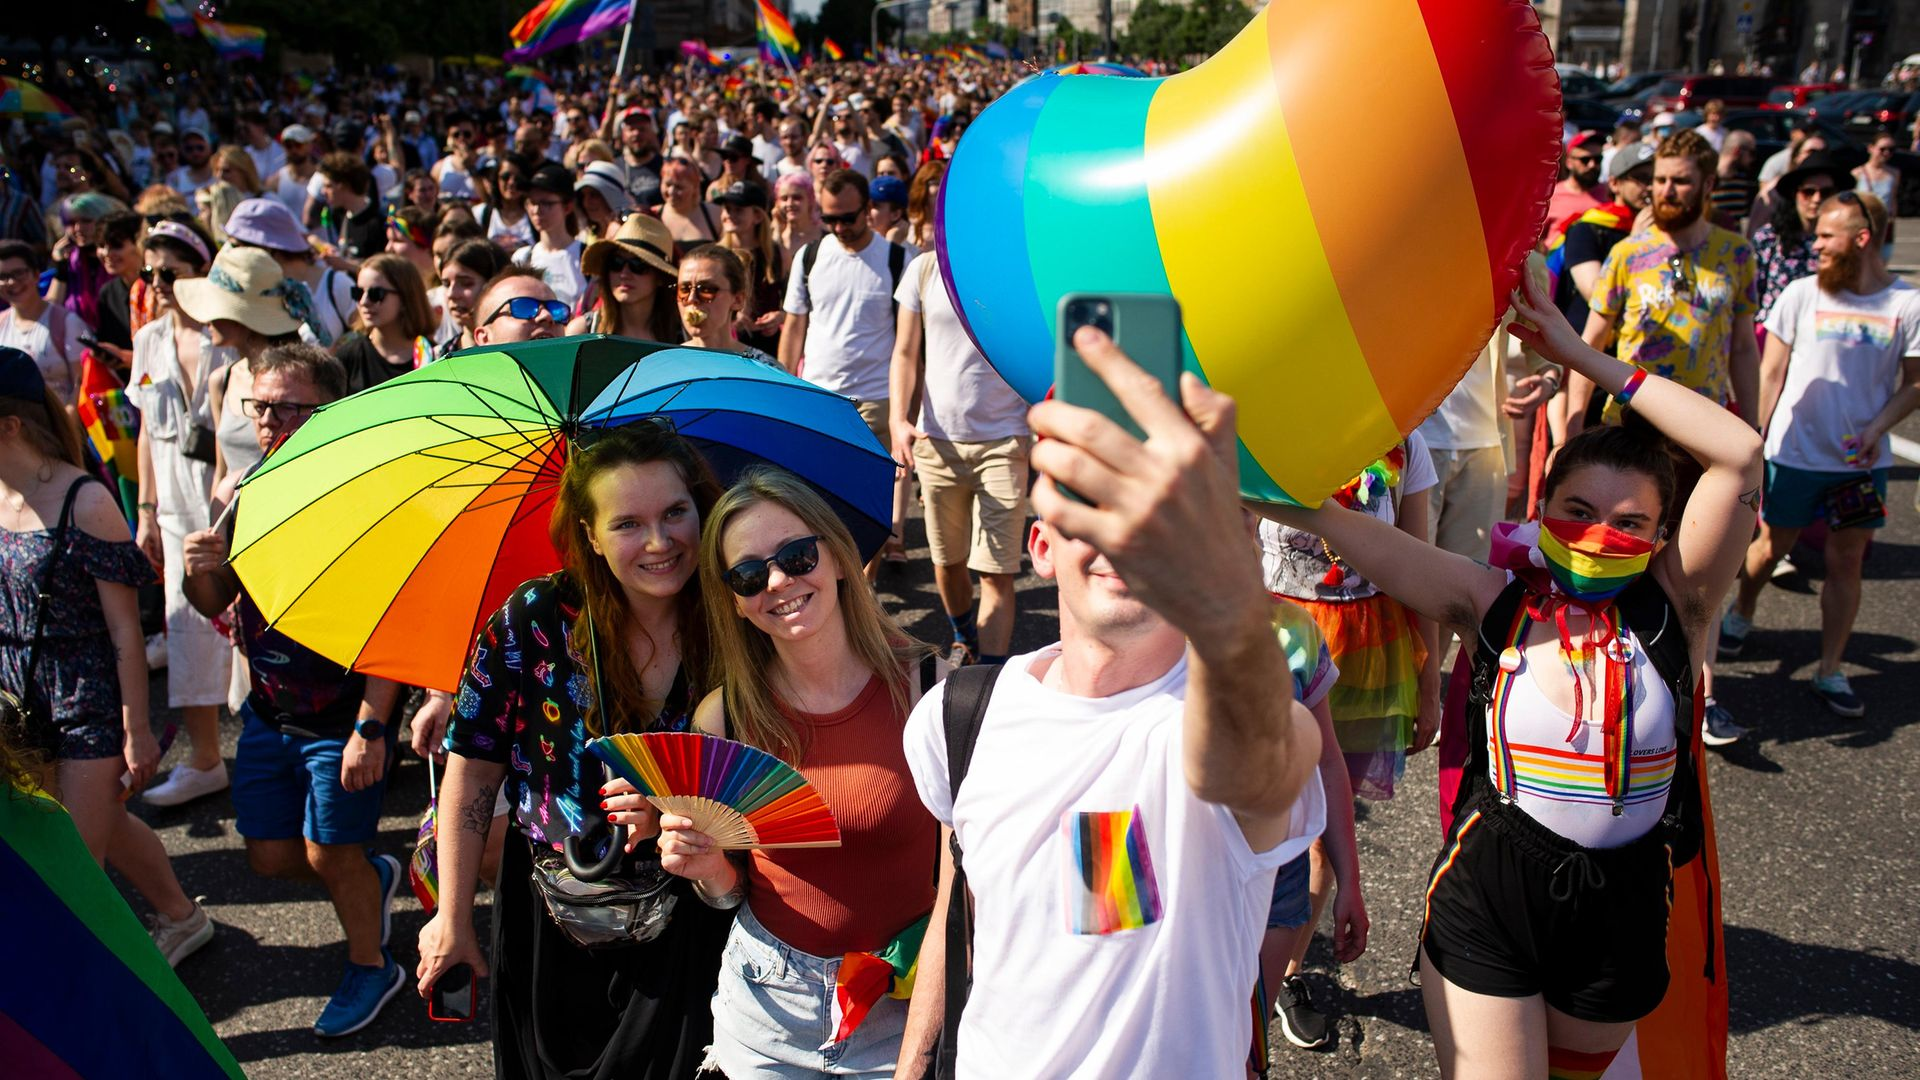 Warsaw's Equality Parade, in June 2021 - Credit: NurPhoto via Getty Images